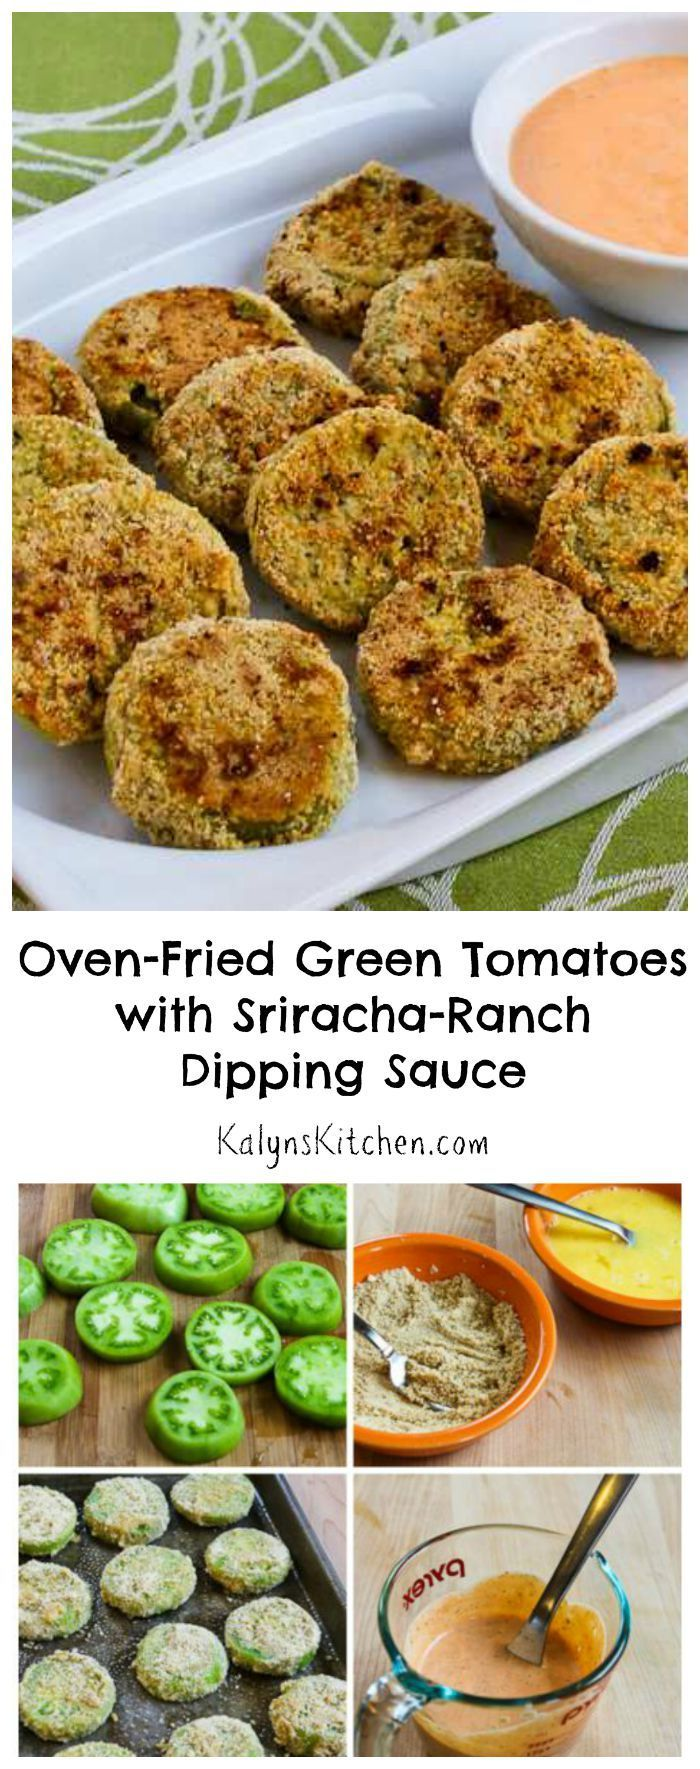 Green Tomatoes with Sriracha-Ranch Dipping Sauce If you're looking for a recipe that will wow your guests at a summer party, these low-carb and gluten-free Oven-Fried Green Tomatoes with Sriracha-Ranch Dipping Sauce are definitely a winner! This recipe uses unripe green tomatoes in a healthier version of the classic southern fri